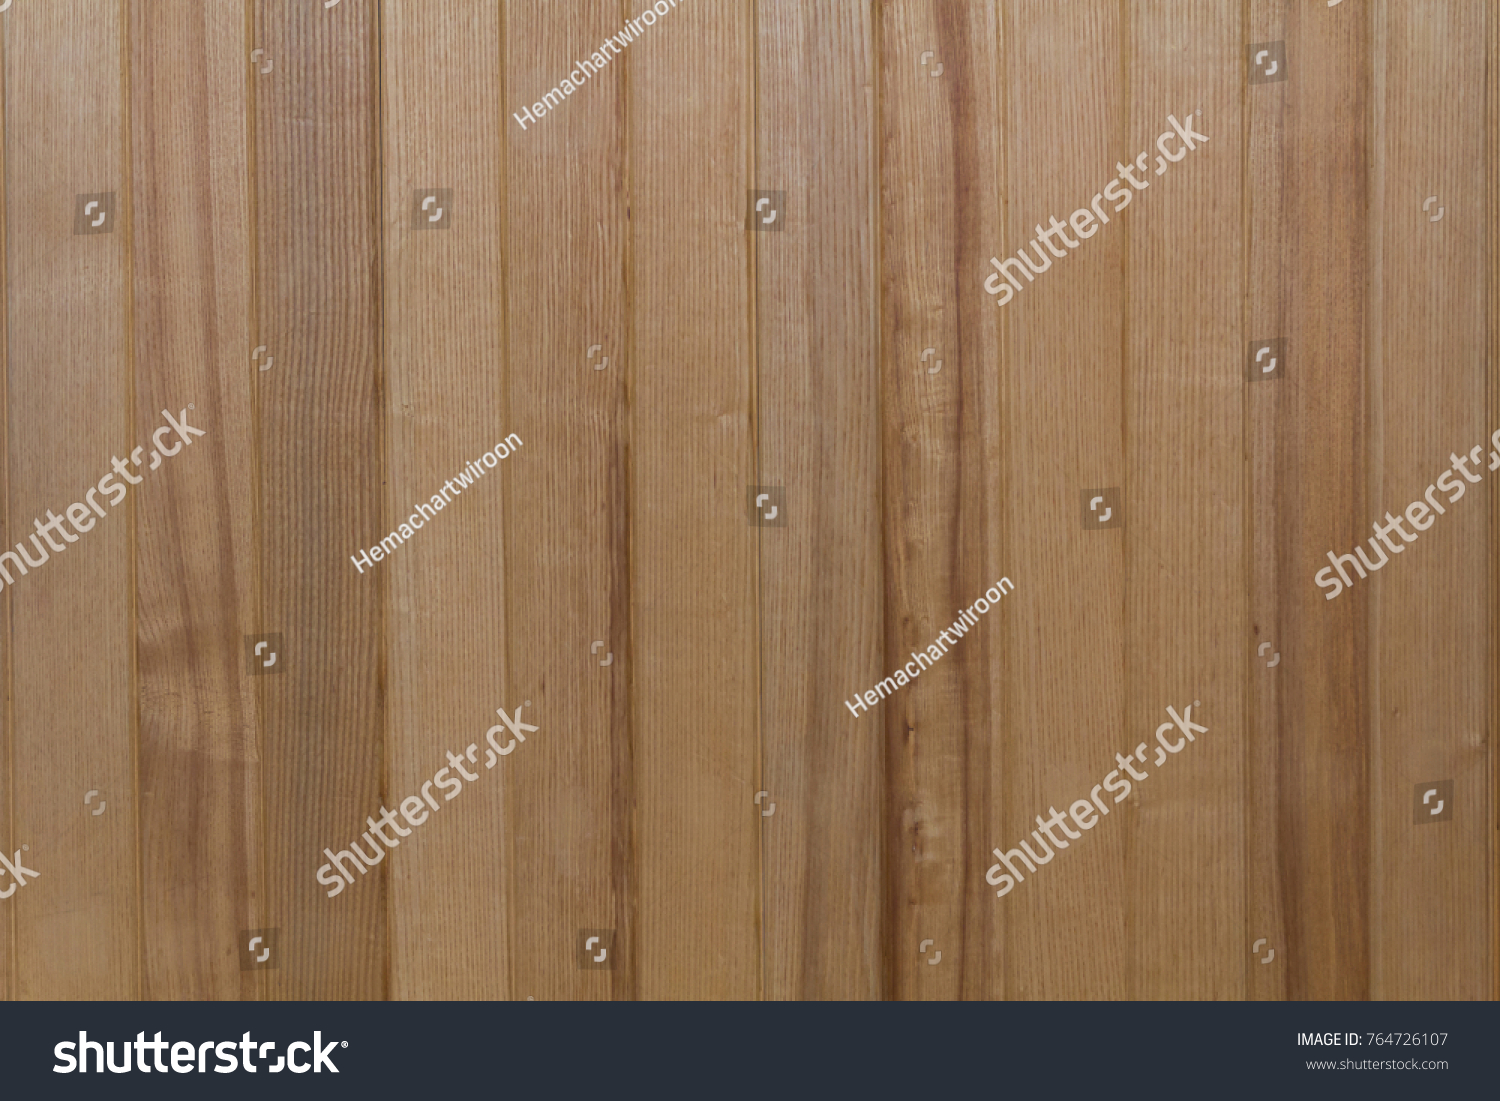 Wood Panels Wall Background Seamless Texture